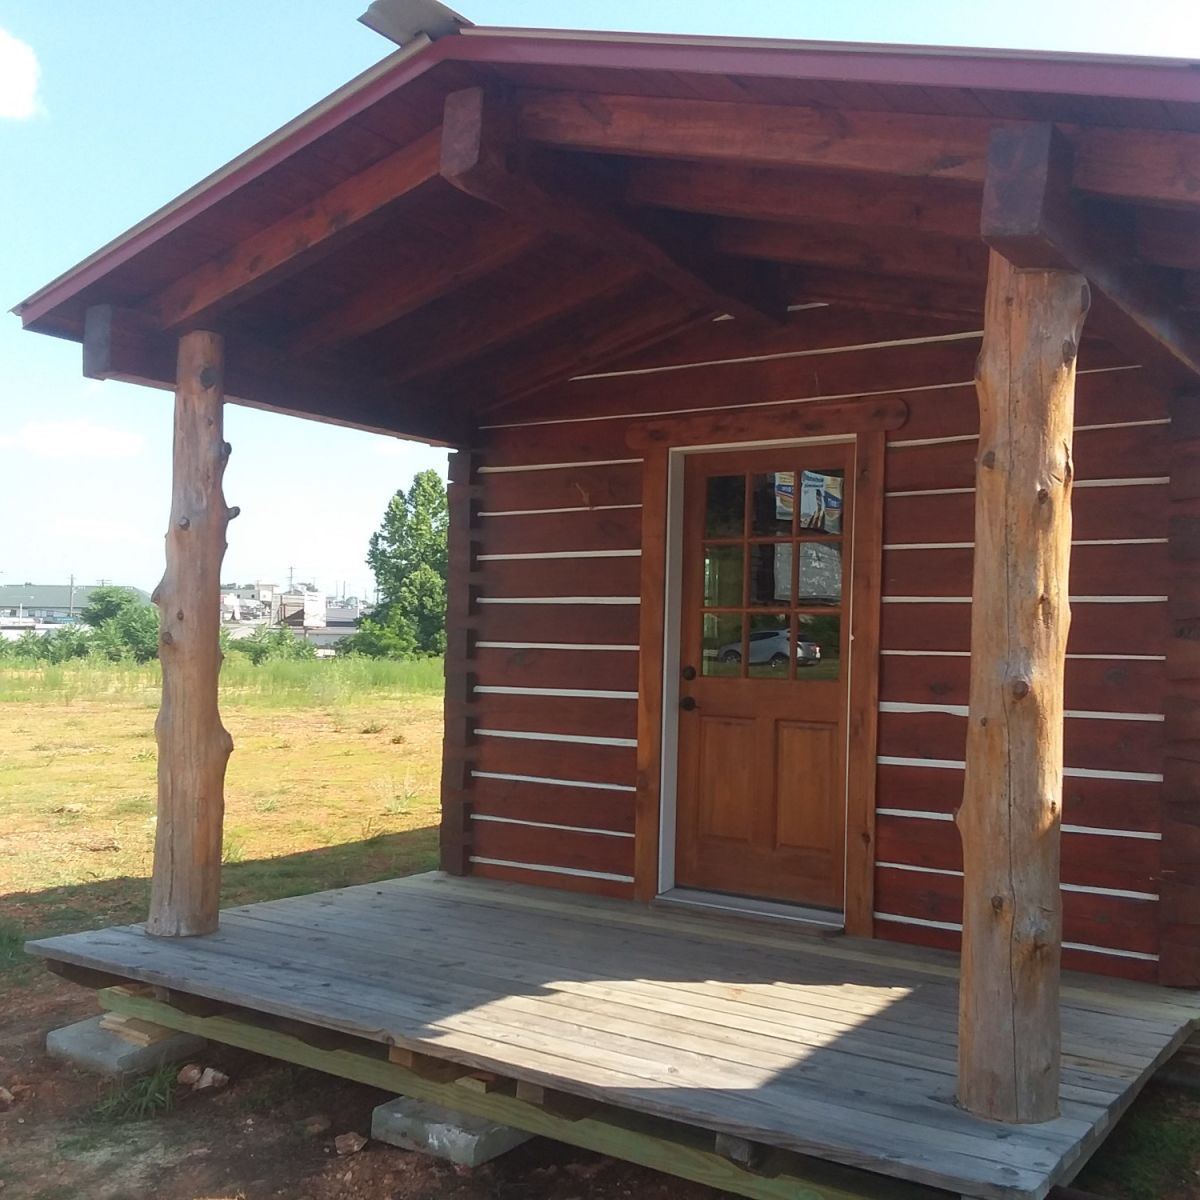 12 Ft X 30 Ft Portable Log Cabin Tiny House Shell For